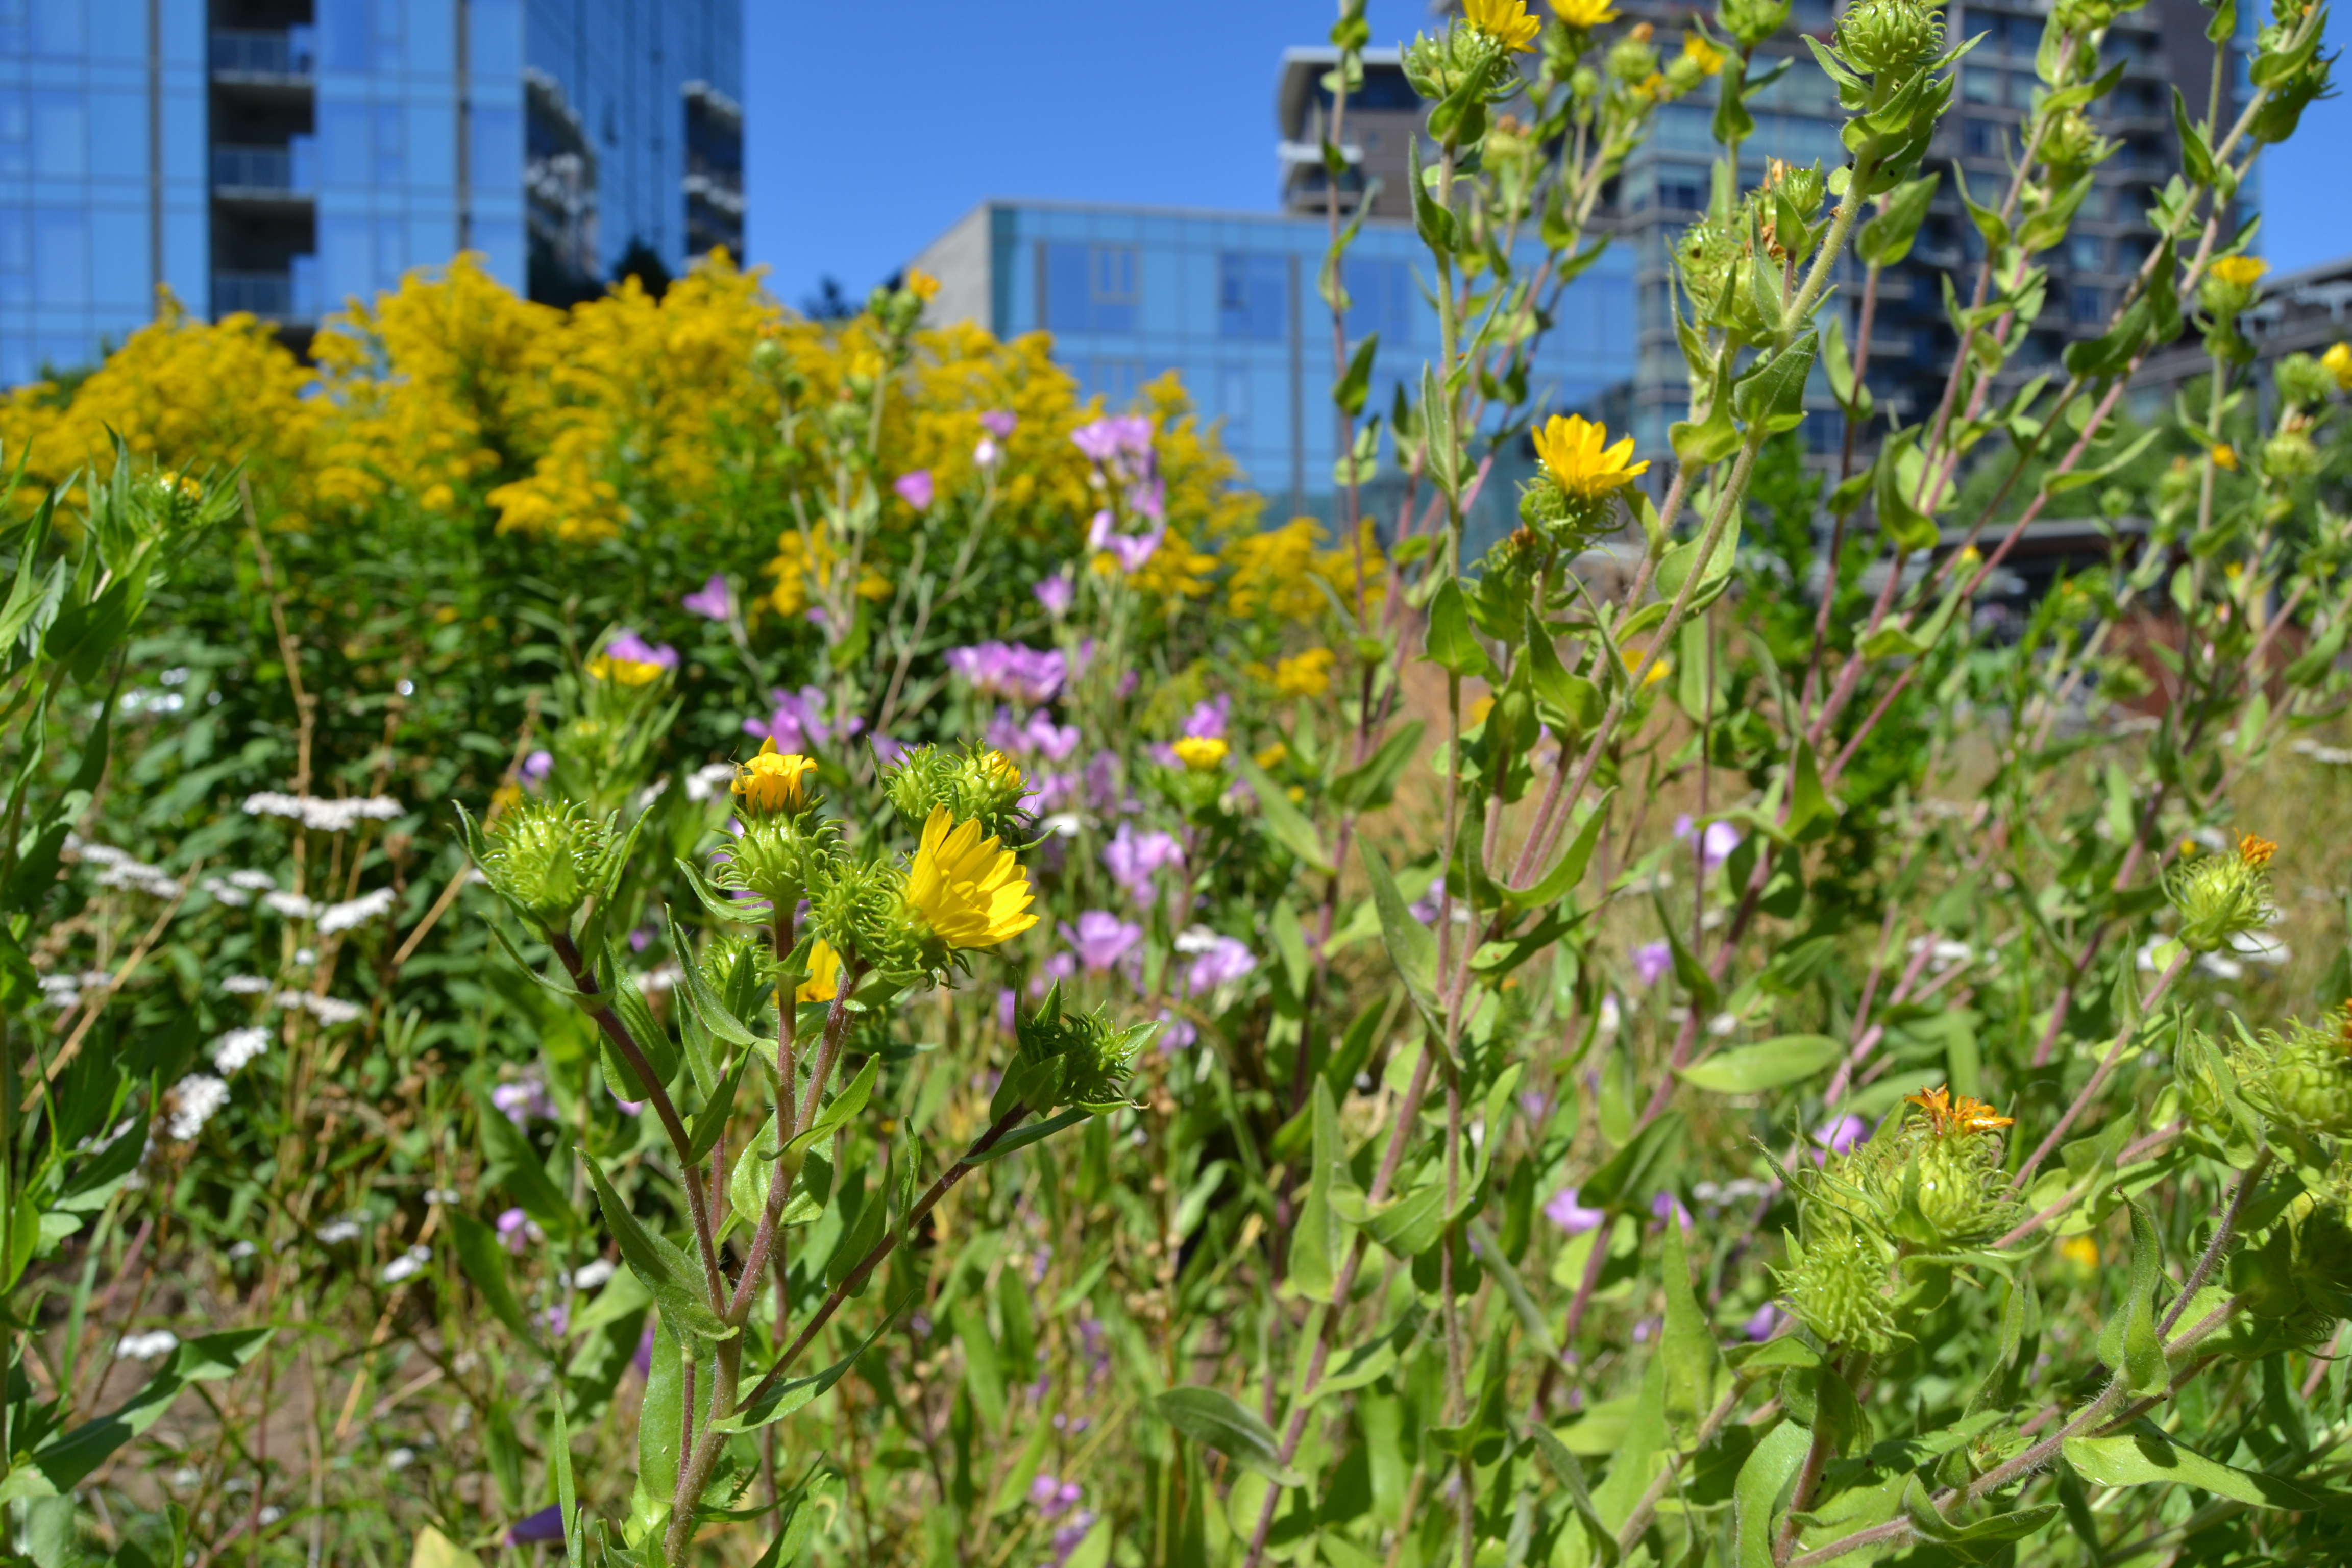 A thick cluster of flowering plants nearly obscures the shiny skyscrapers behind them.